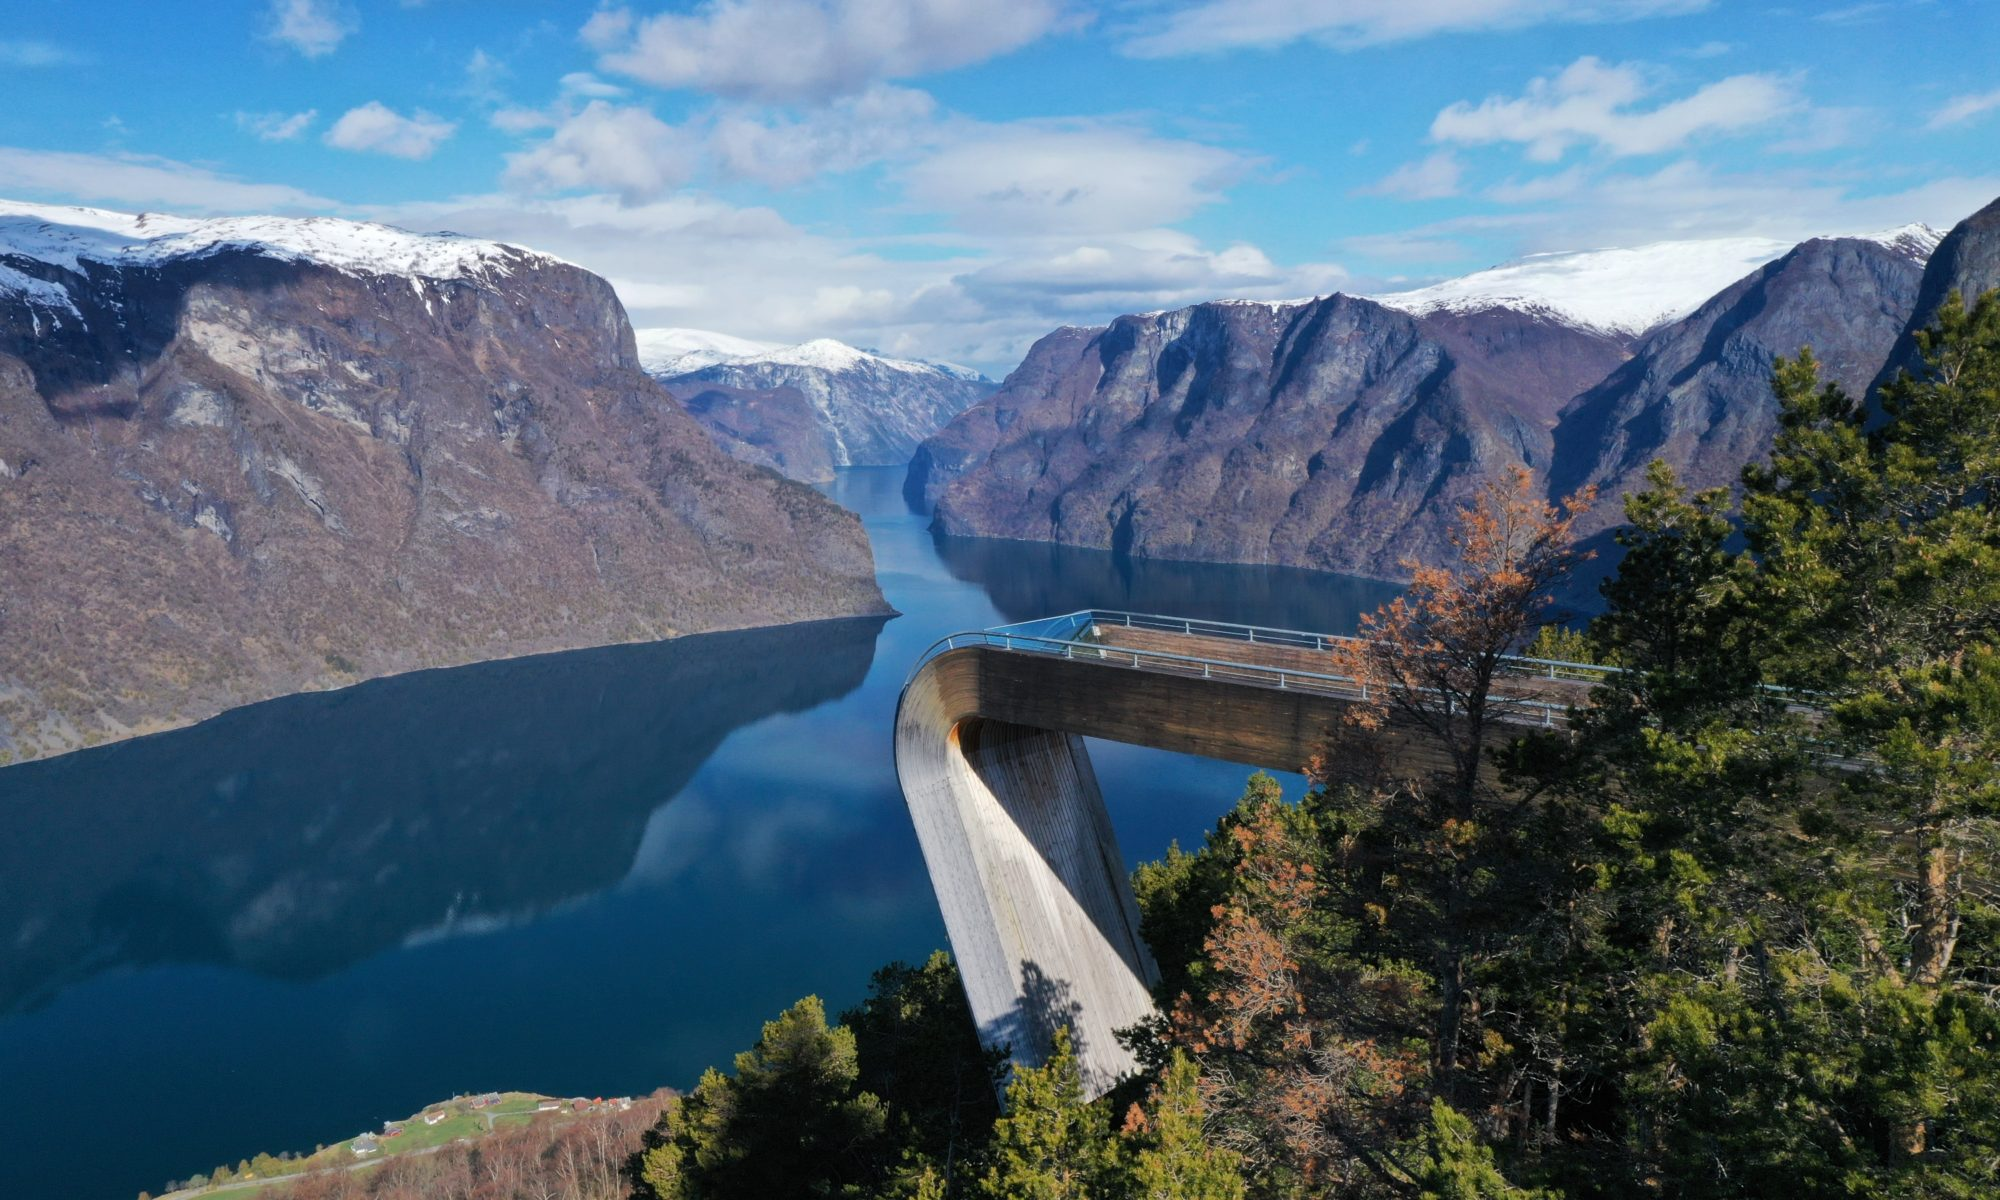 FJORDS NORWAY - Stegastein Viewpoint above Aurland and the Aurlandsfjord